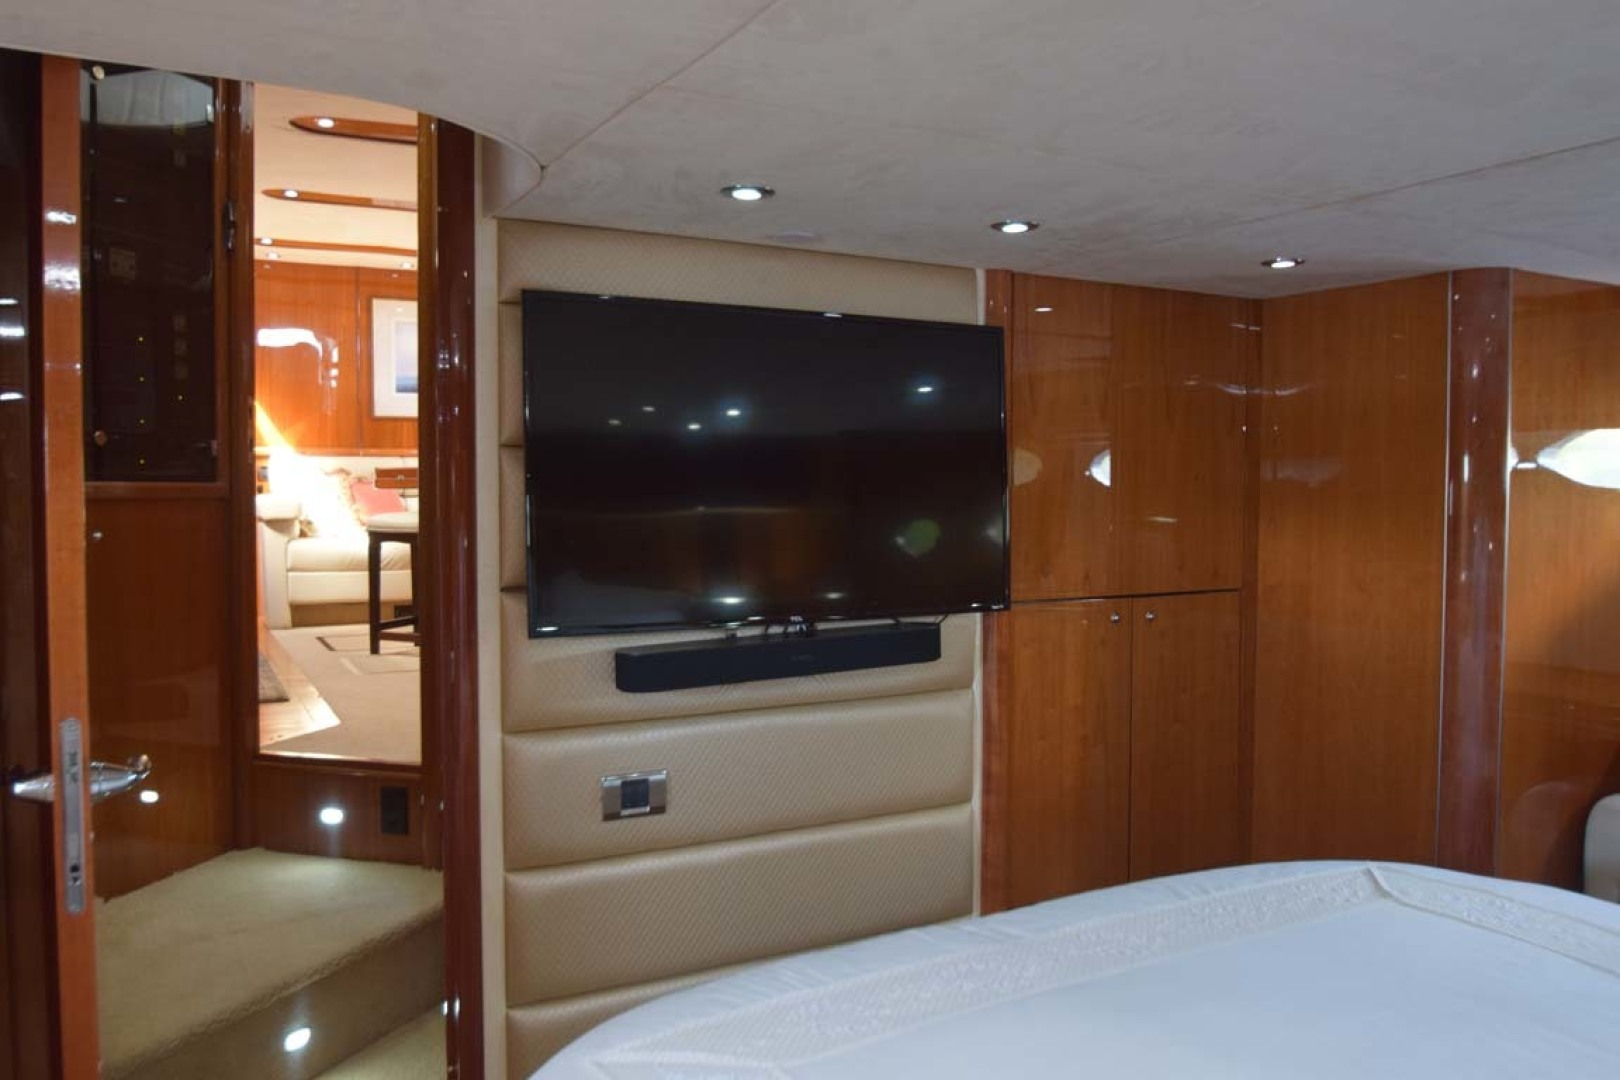 Sunseeker-Predator 2003-Low Profile PALM BEACH-Florida-United States-Master Stateroom View To Flat Screen TV-1576347 | Thumbnail